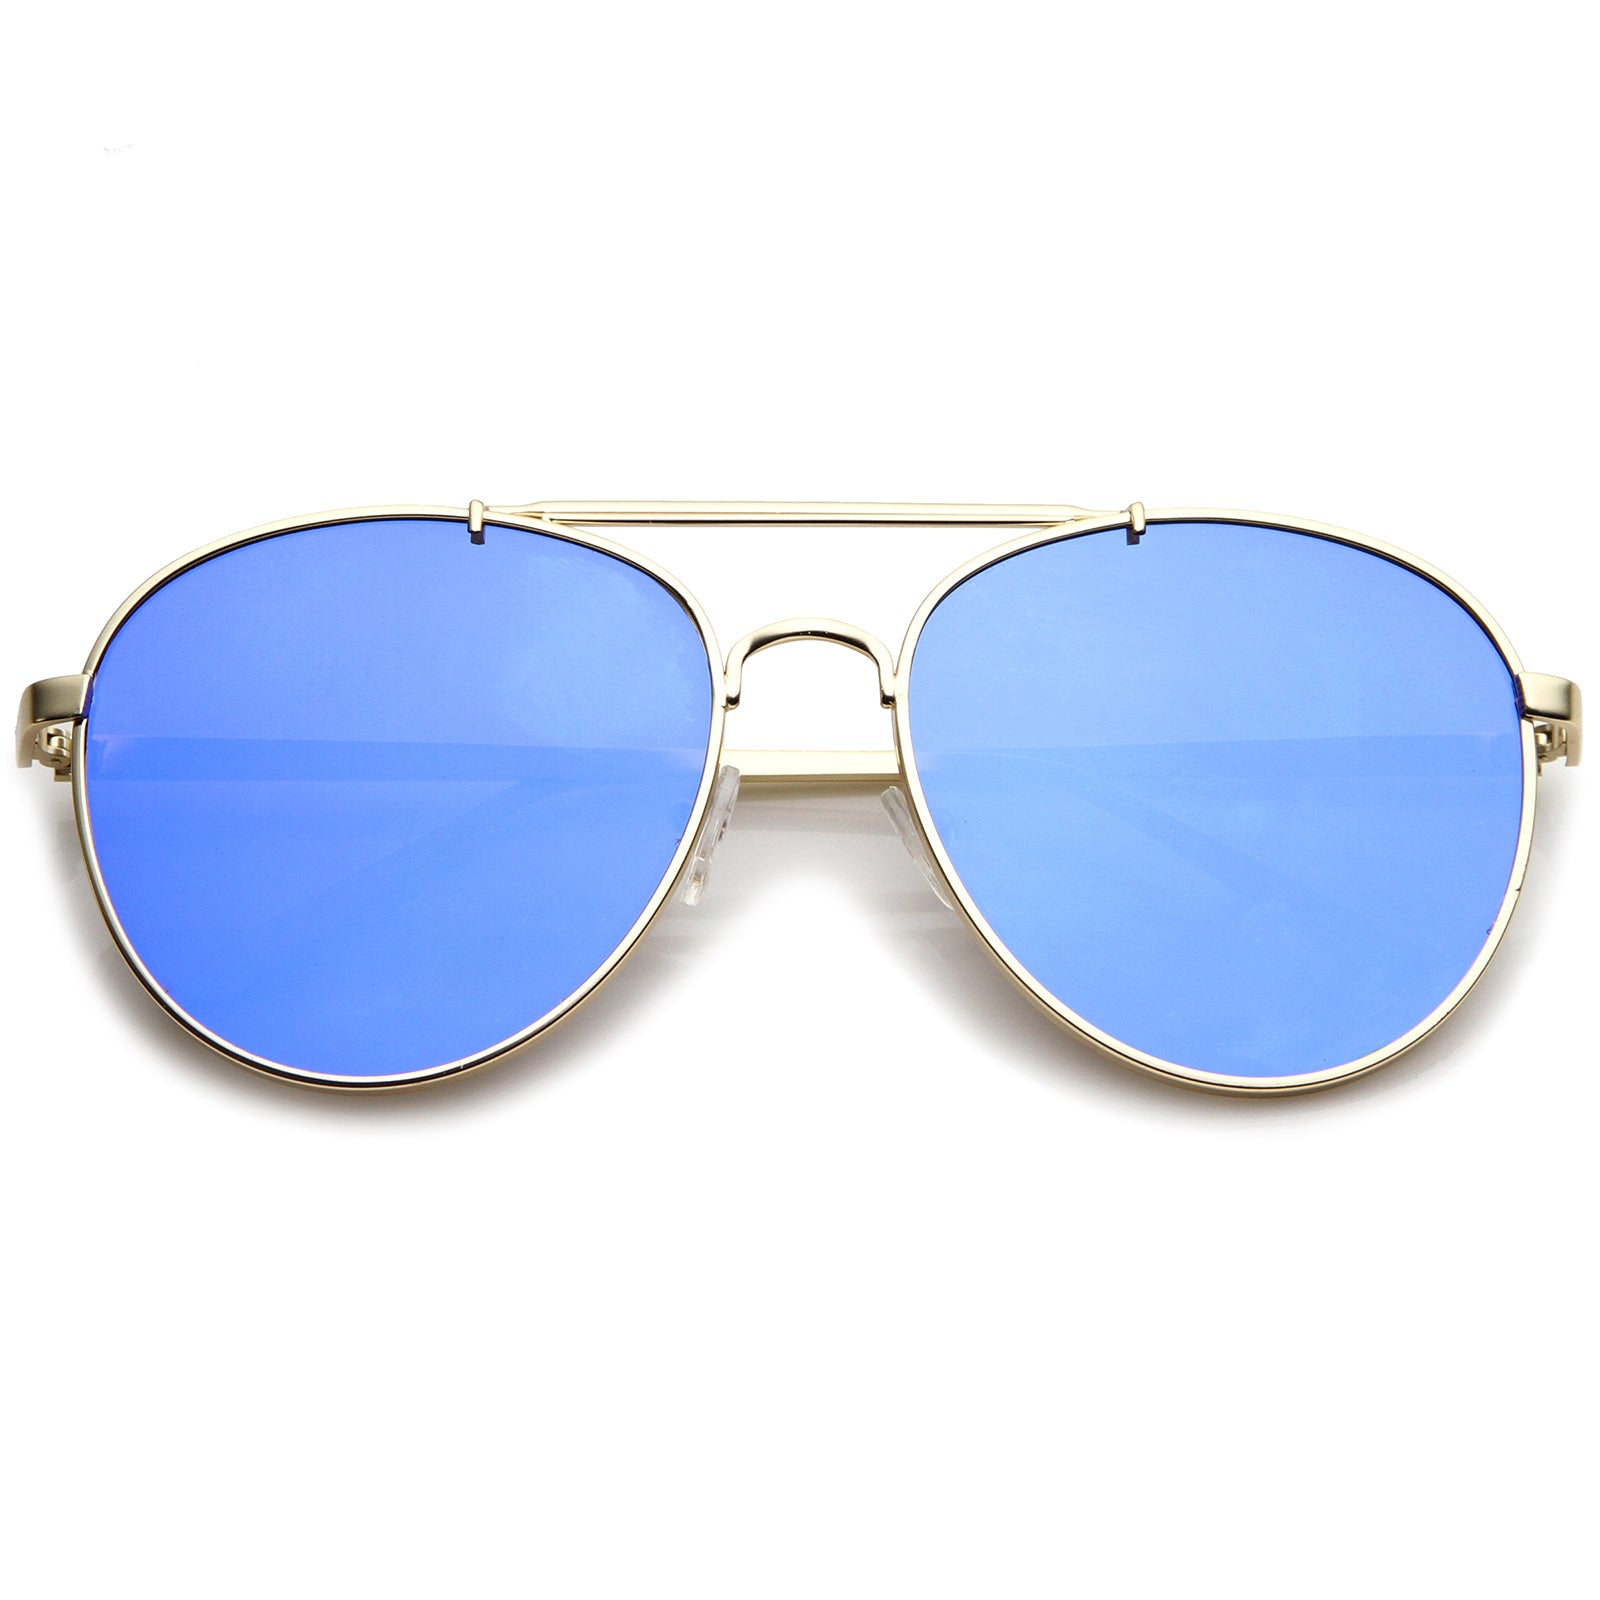 Large Metal Teardrop Double Bridge Mirrored Flat Lens Aviator Sunglasses 60mm - sunglass.la - 17